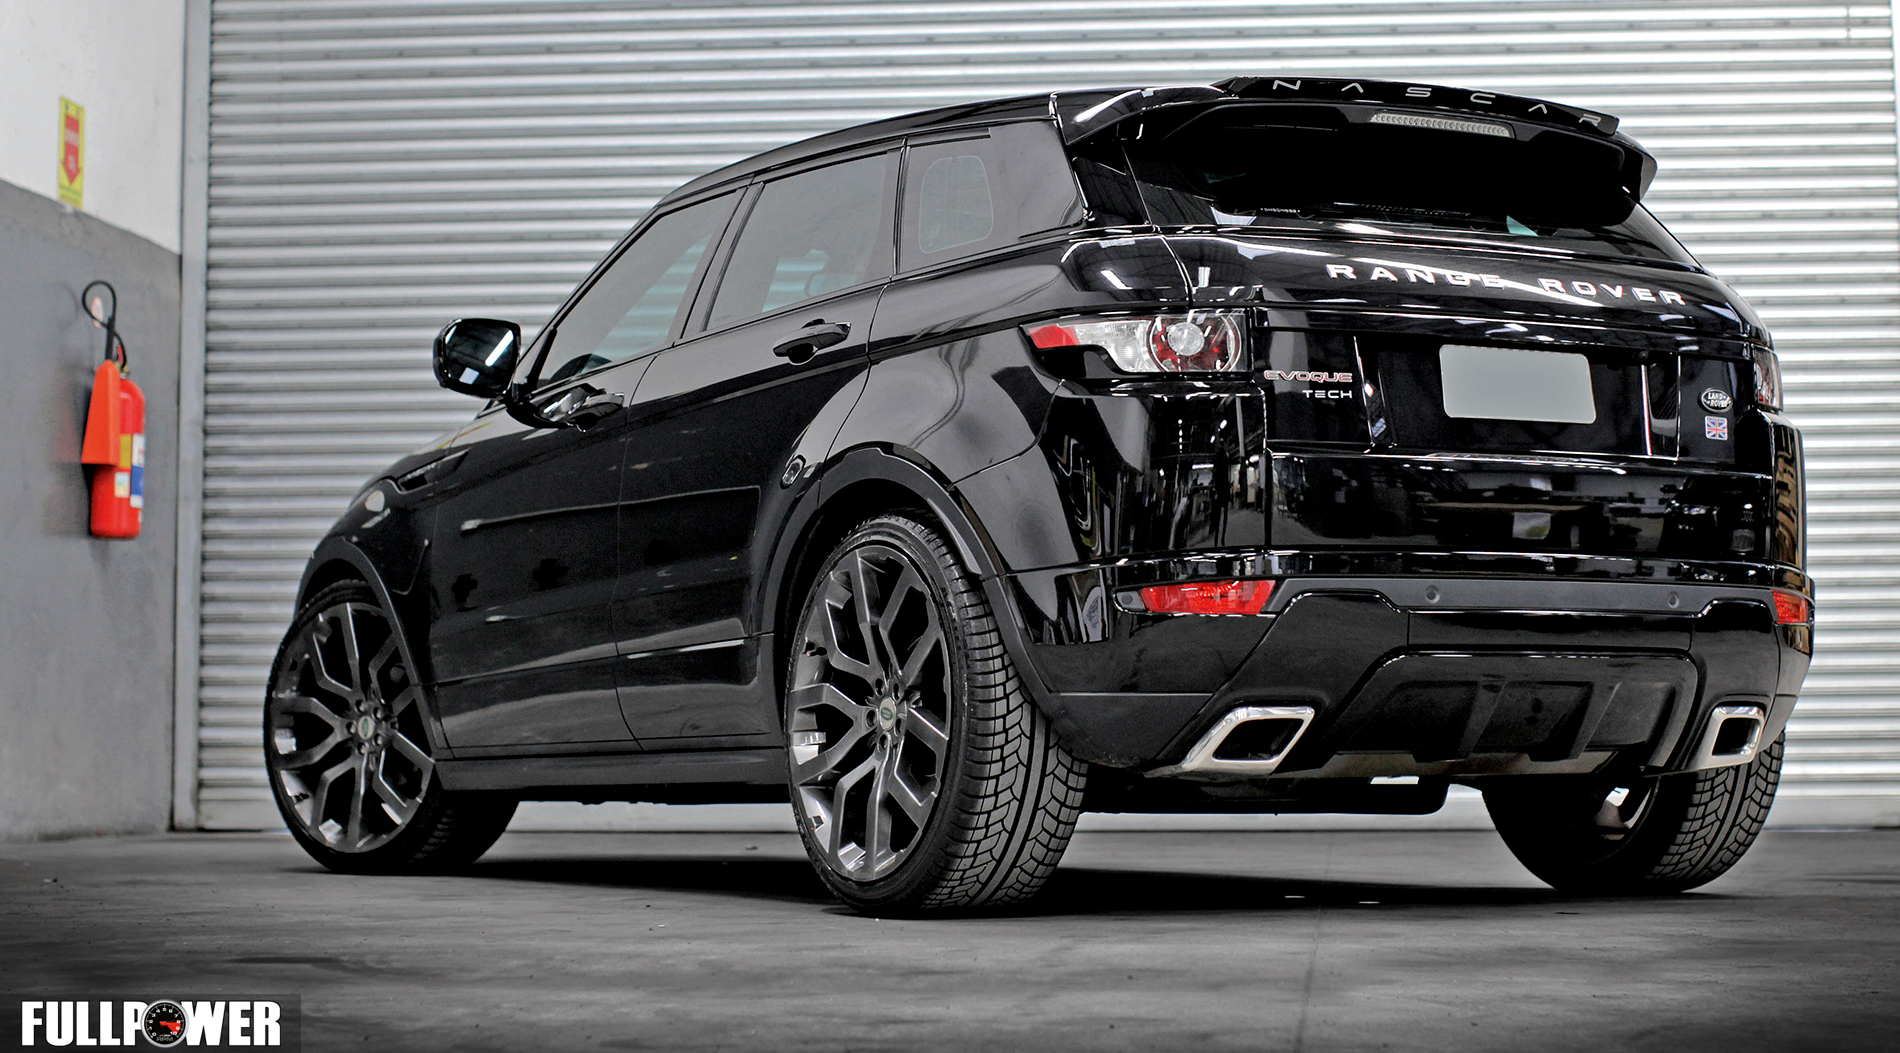 Land Rover Evoque Passa Dos 280 Cv Com Chip Fullpower